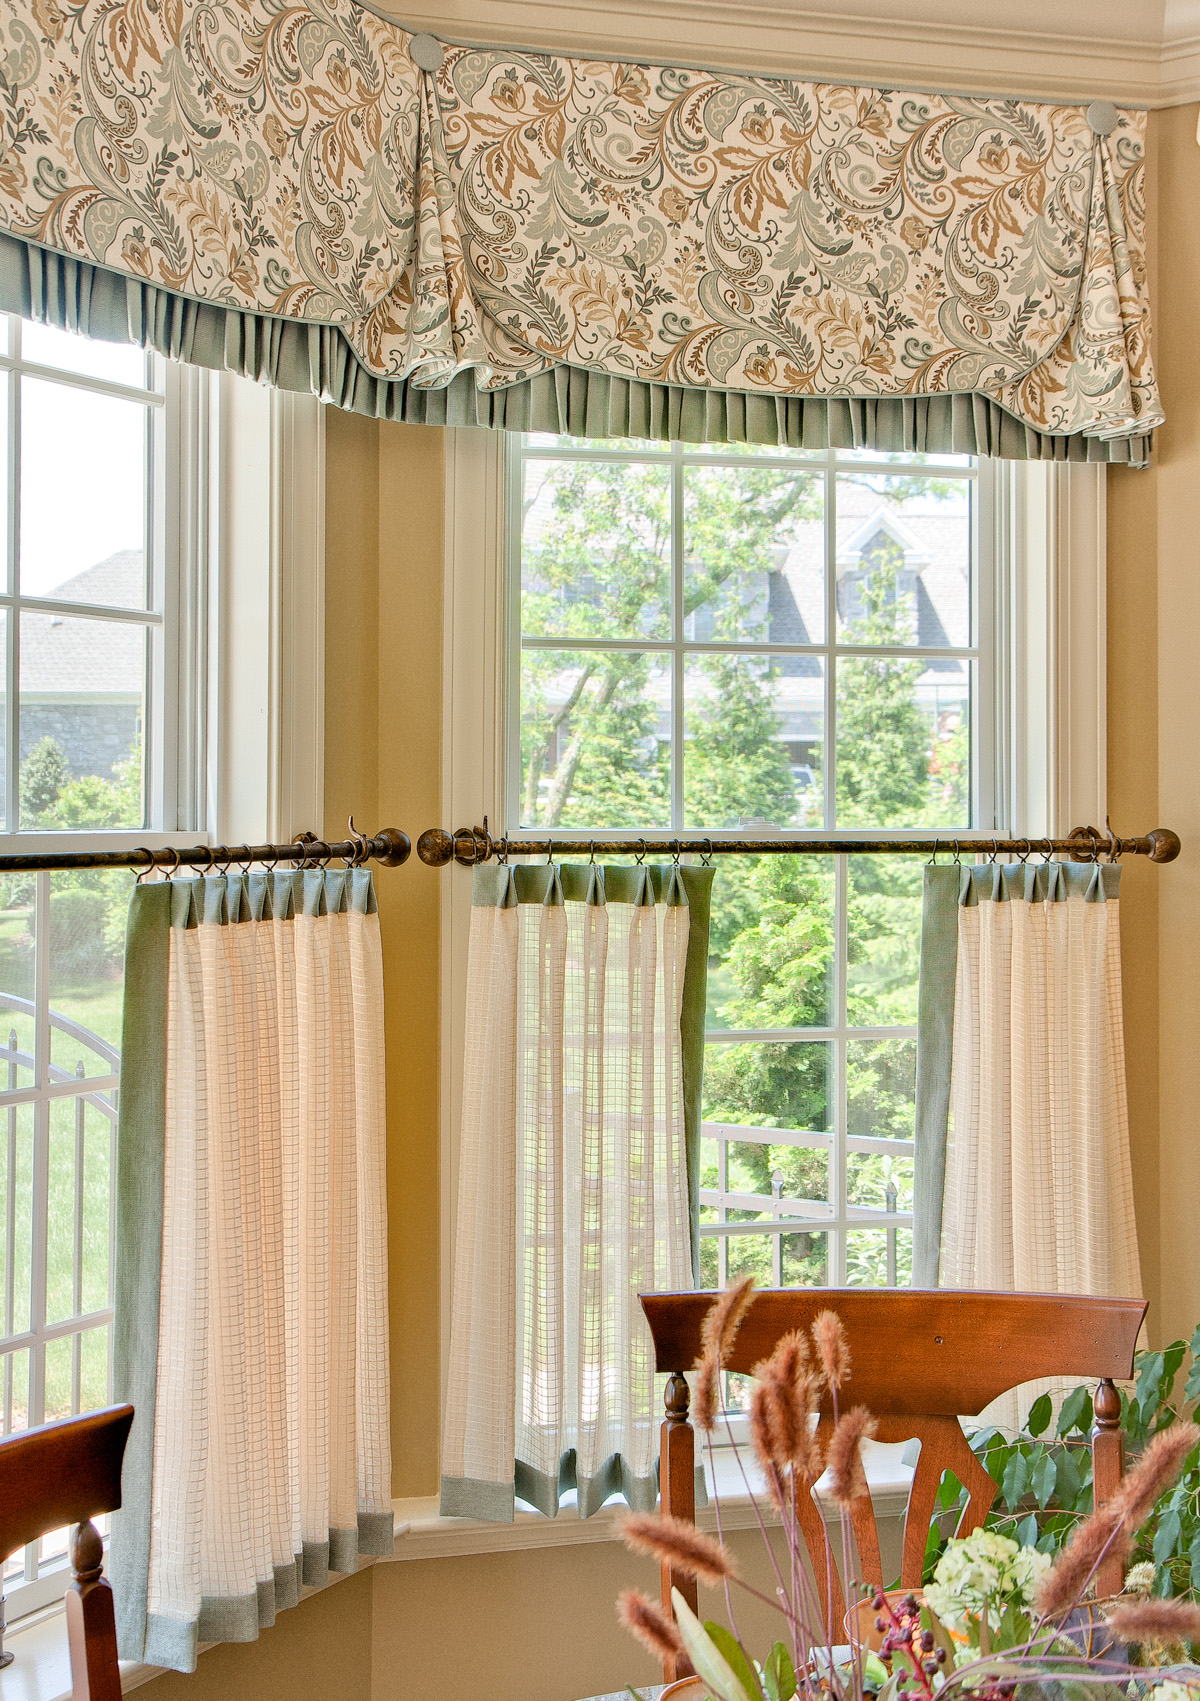 Are Your Windows Too Small Large A Carefully Designed Window Treatment Can Actually Be Clever Cover Up To Any Challenge